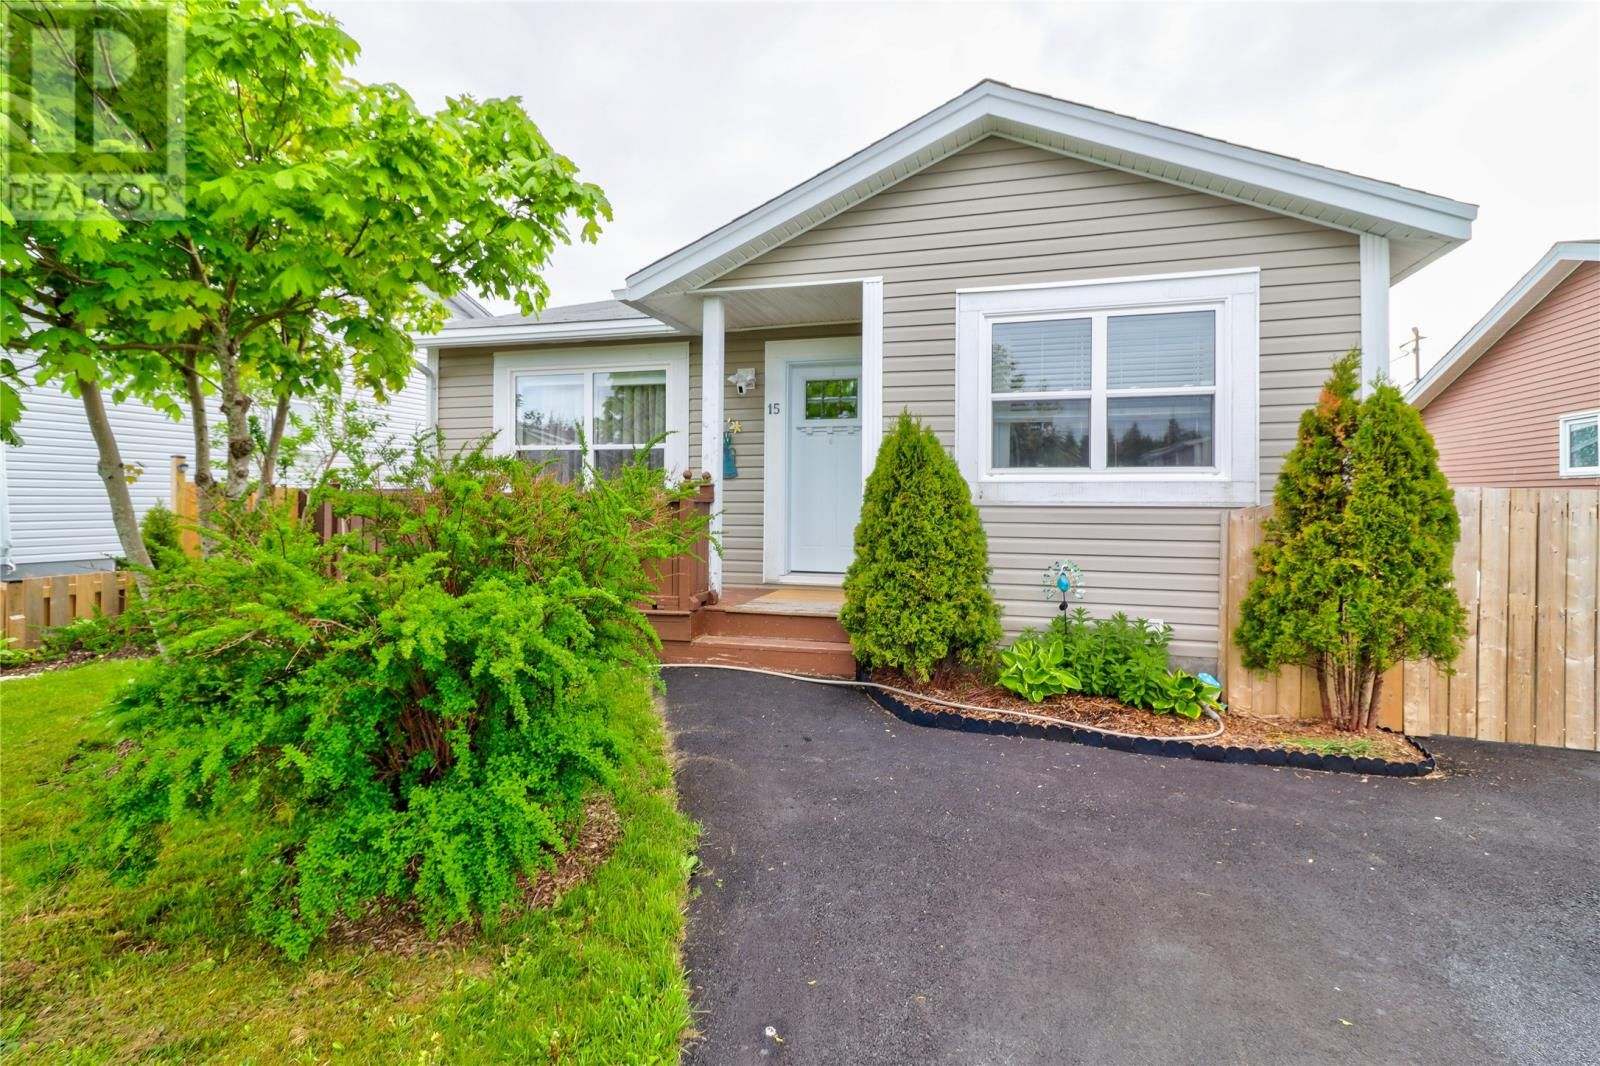 Main Photo: 15 Montclair Street in Mount Pearl: House for sale : MLS®# 1232381